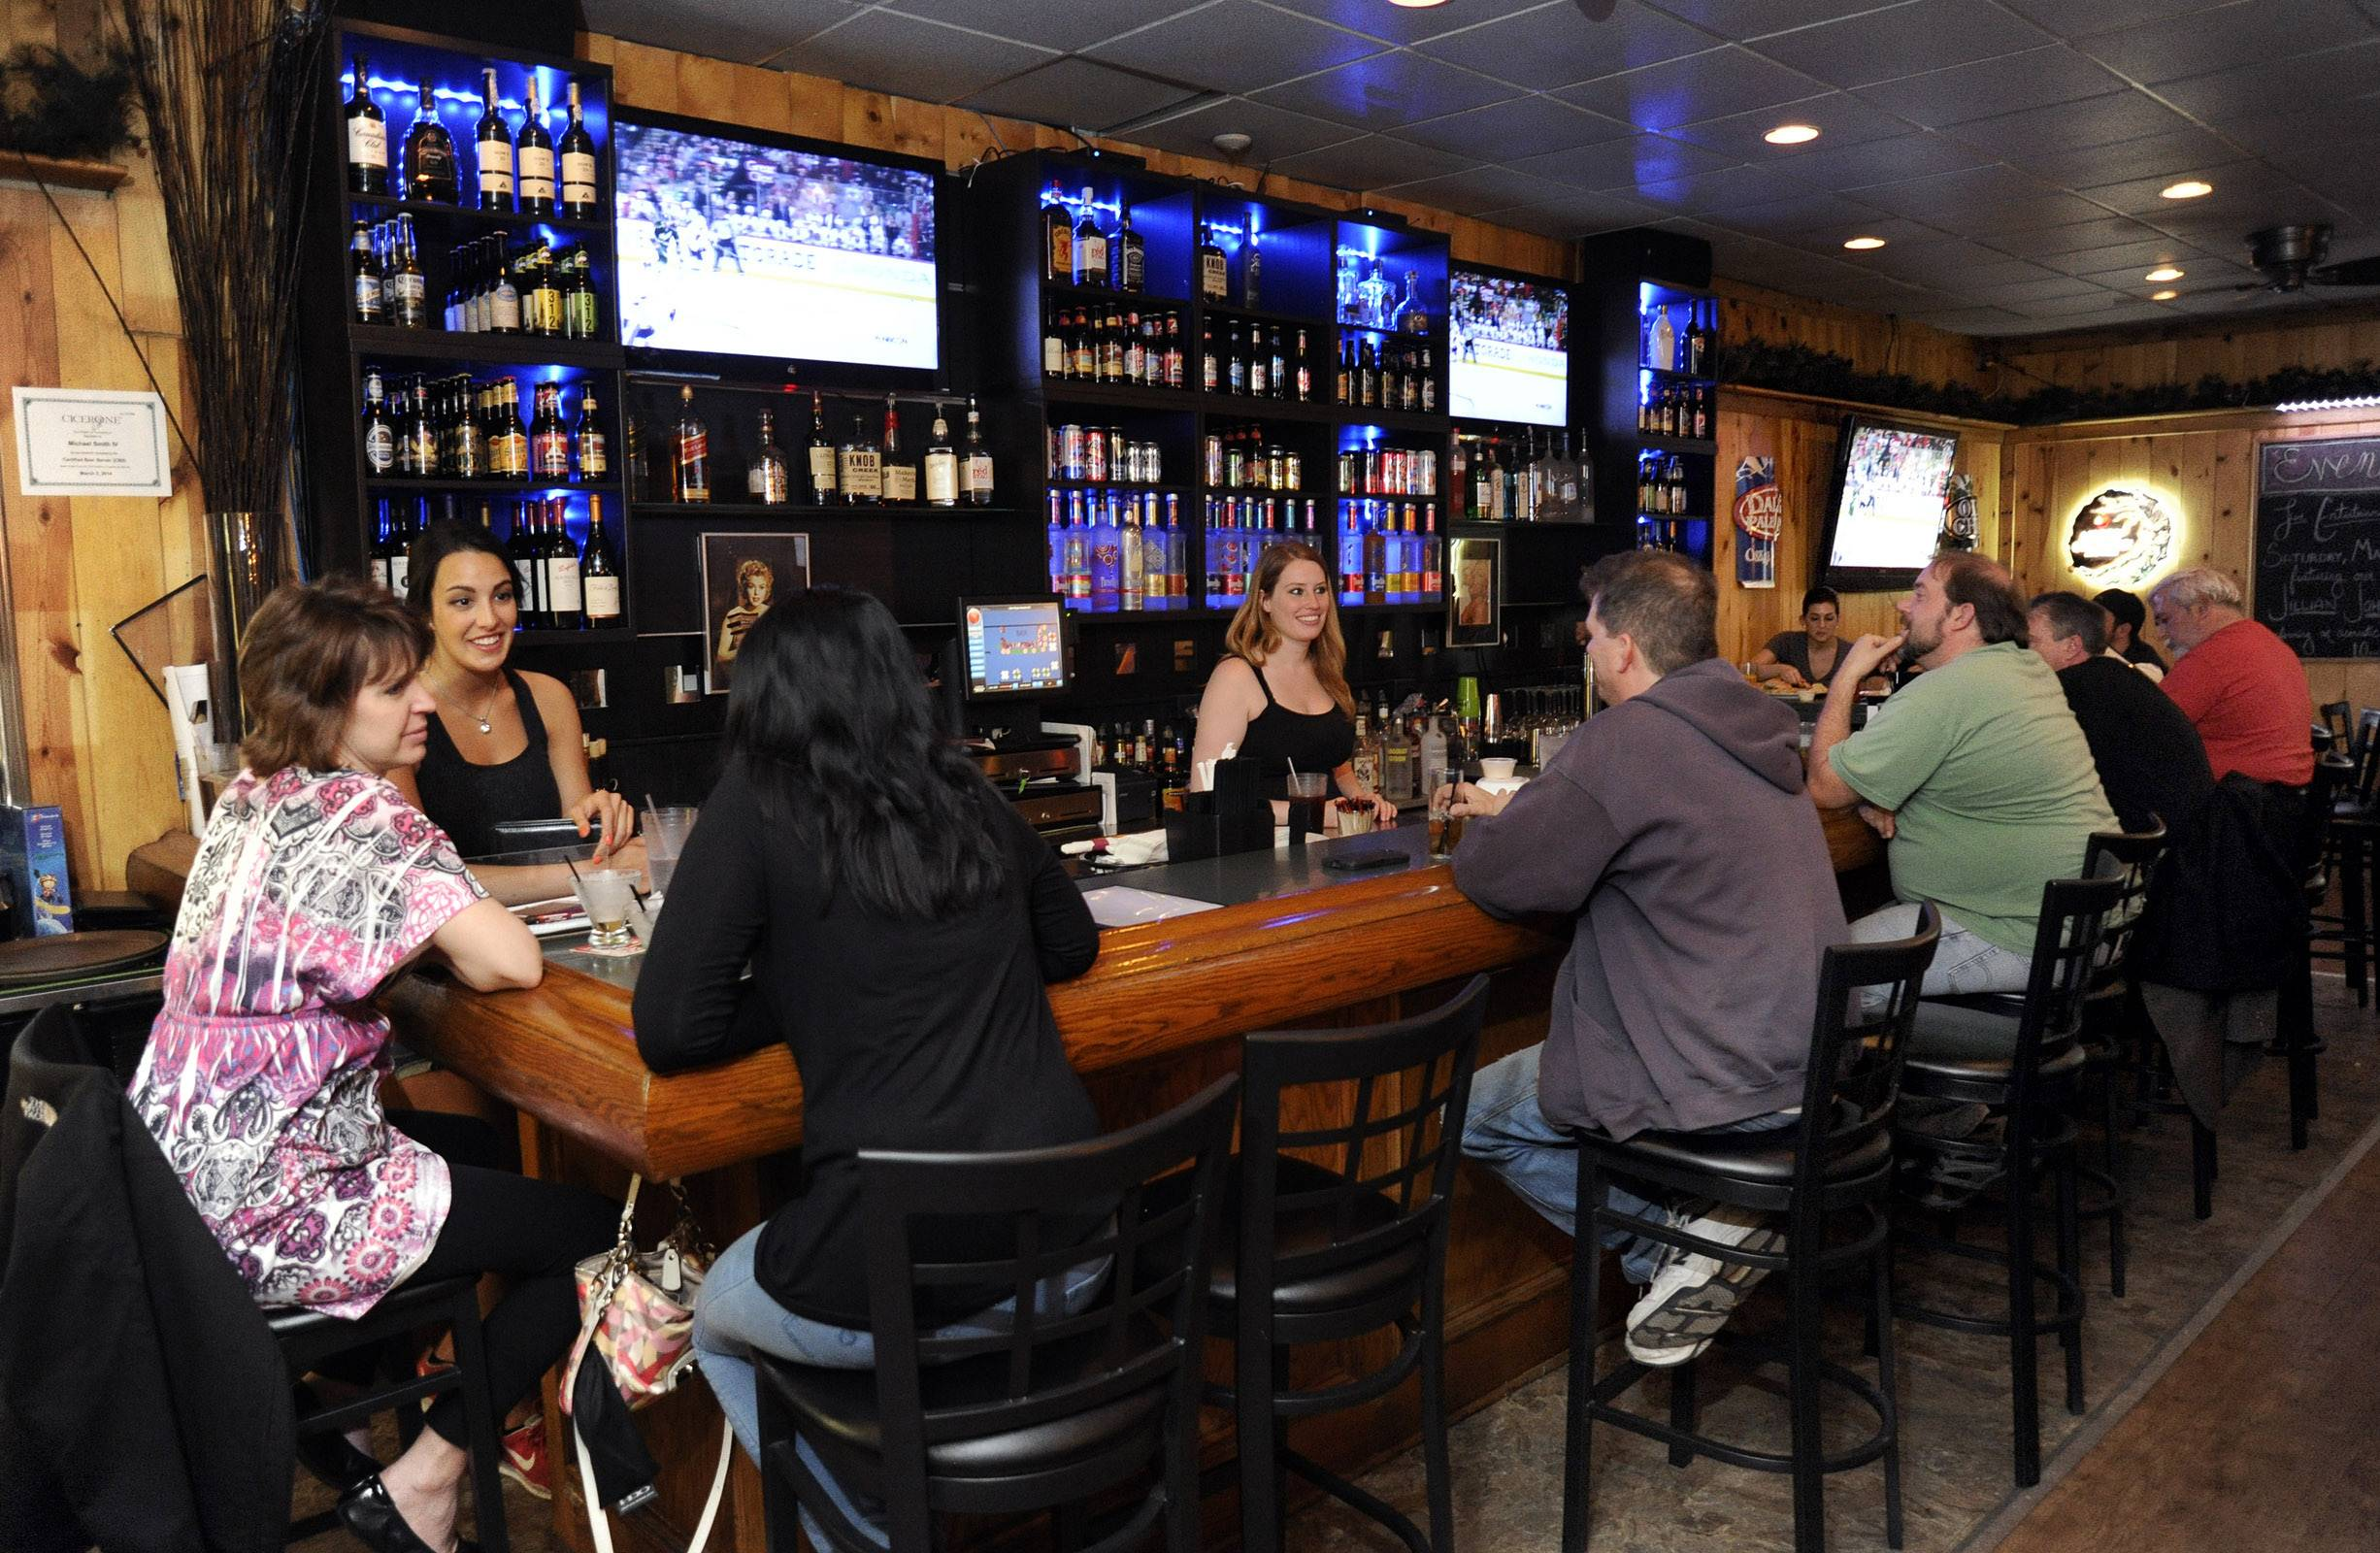 Beer, barbecue and ball games are among the draws at The Range Grill & Tap in Batavia.